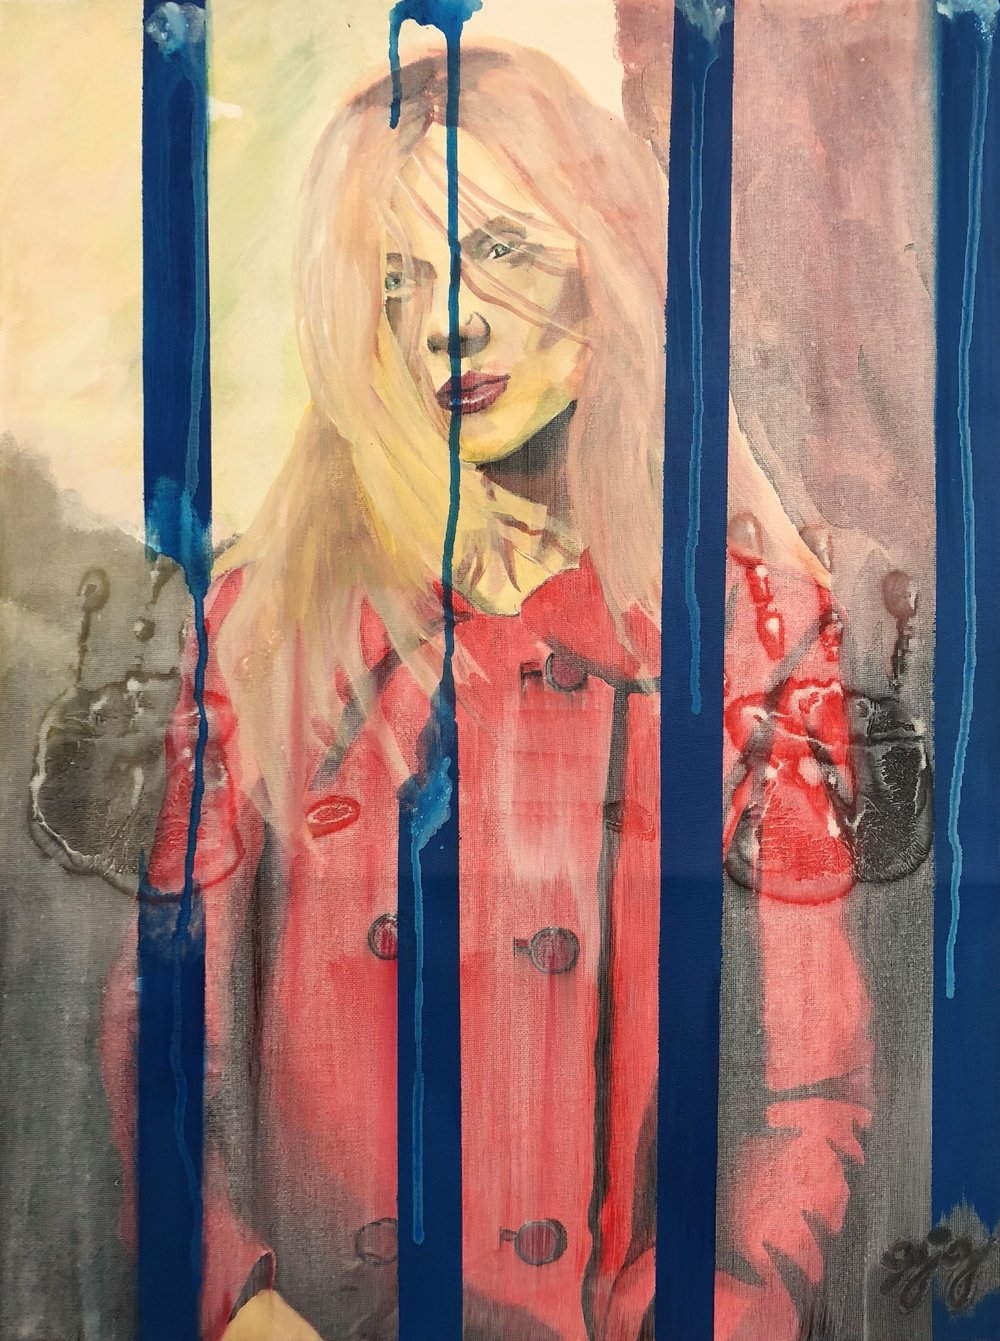 Who is Really in Prison?   This painting depicts a woman standing alone with a window and prison bars. She wears a trendy red coat that misrepresents her means, suggesting she can afford the cost of the pictures, calls, videos, and visits required to communicate with an incarcerated loved one. But she can't, and the emotional price is heavy. The pain, loneliness, and helplessness on her face as she looks at the remnants of her loved ones prints on the wet and dirty window in the visiting room is a testament of the burden carried. Posing the question: Who is really in Prison?    Not for Sale